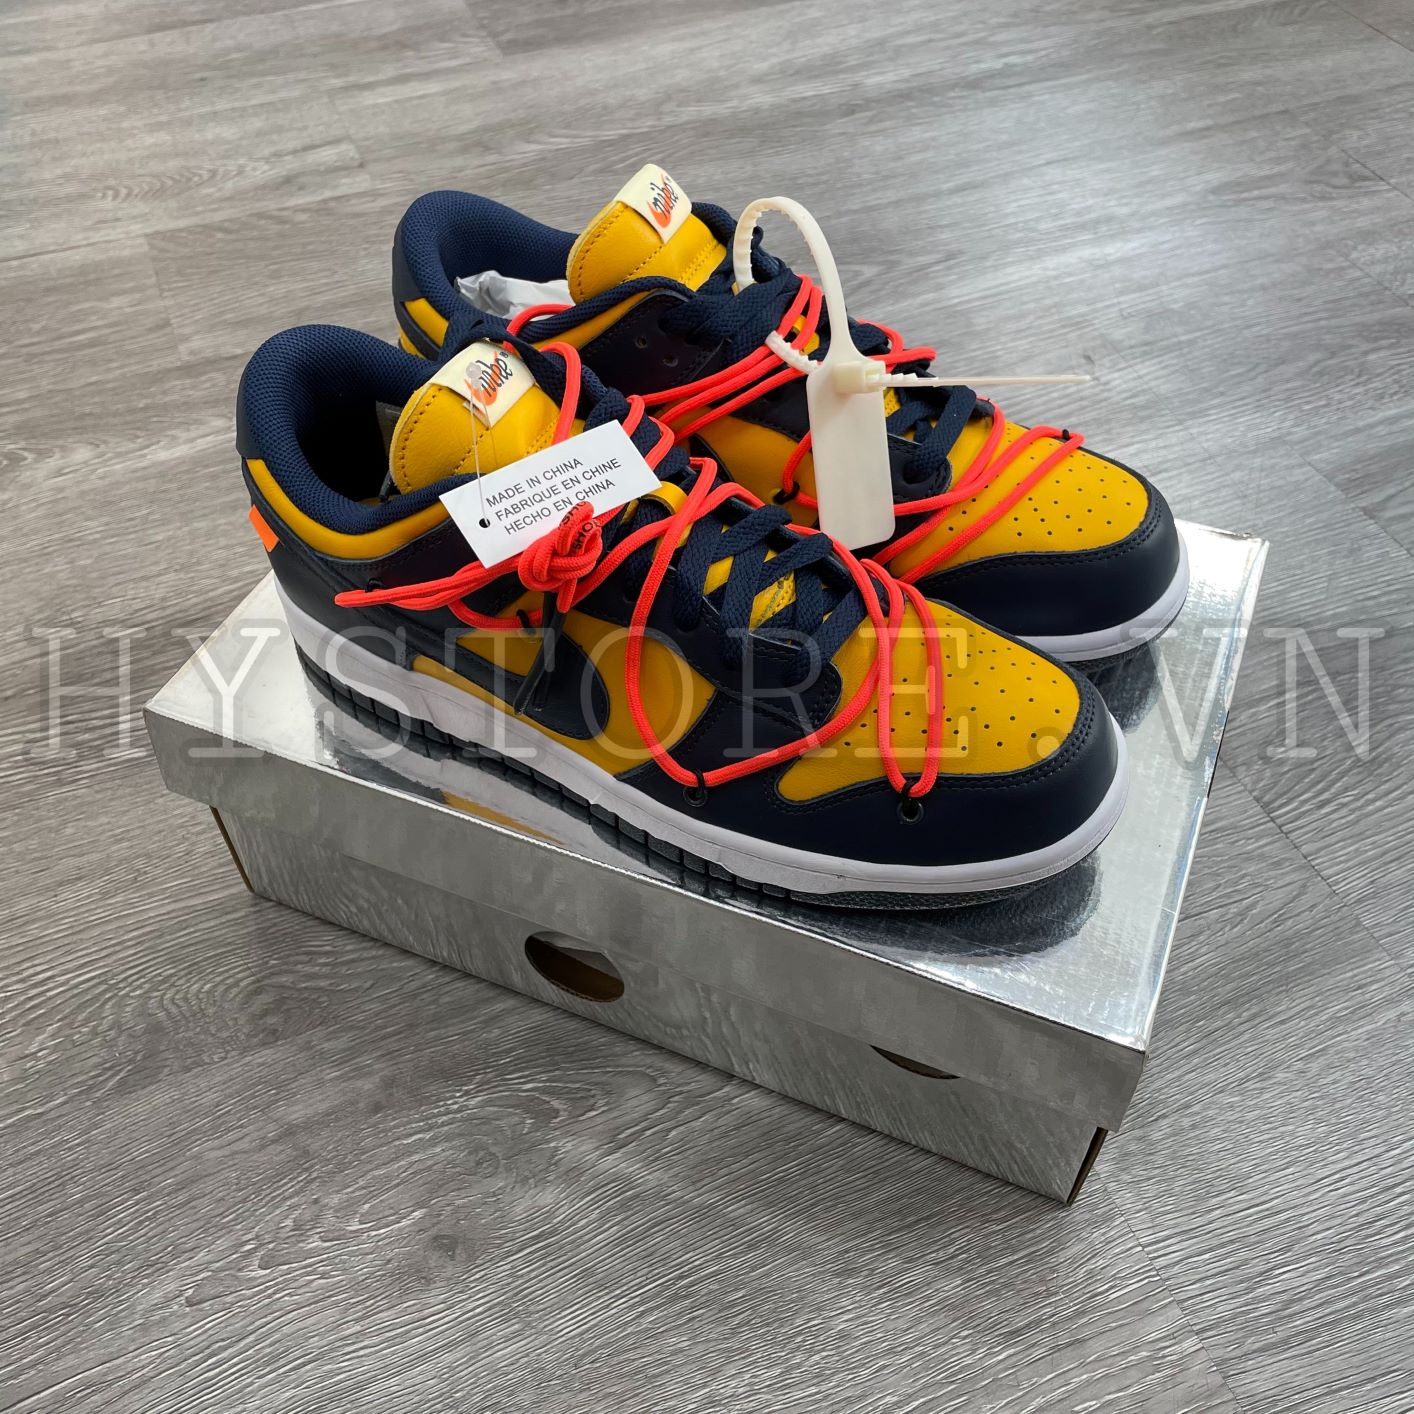 Giày Nike Dunk Low Offwhite Michigan